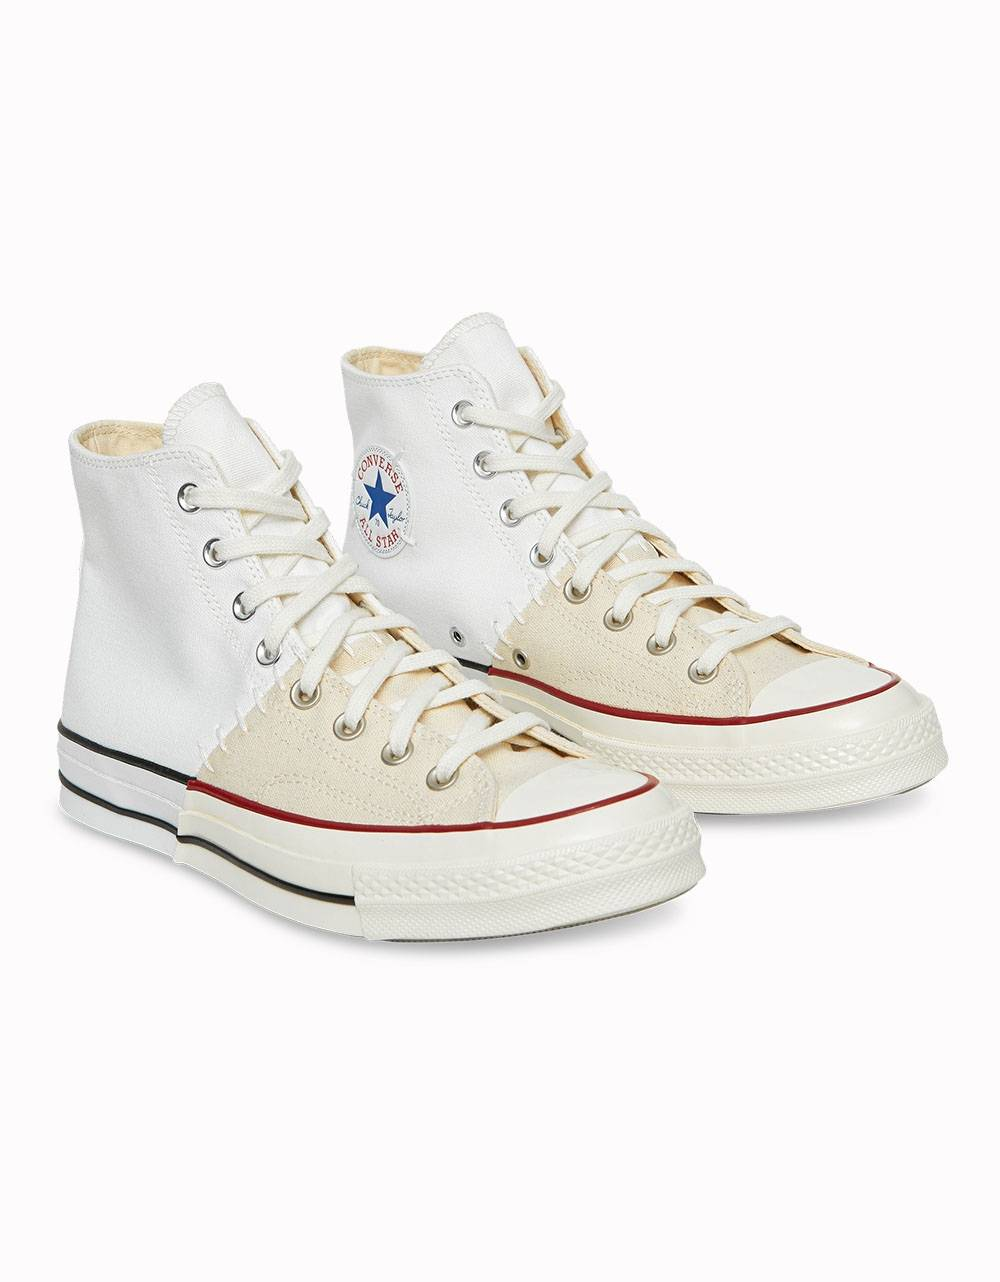 Converse Chuck Taylor 70 Recostructed High ltd - White/egret Converse Sneakers 142,00€